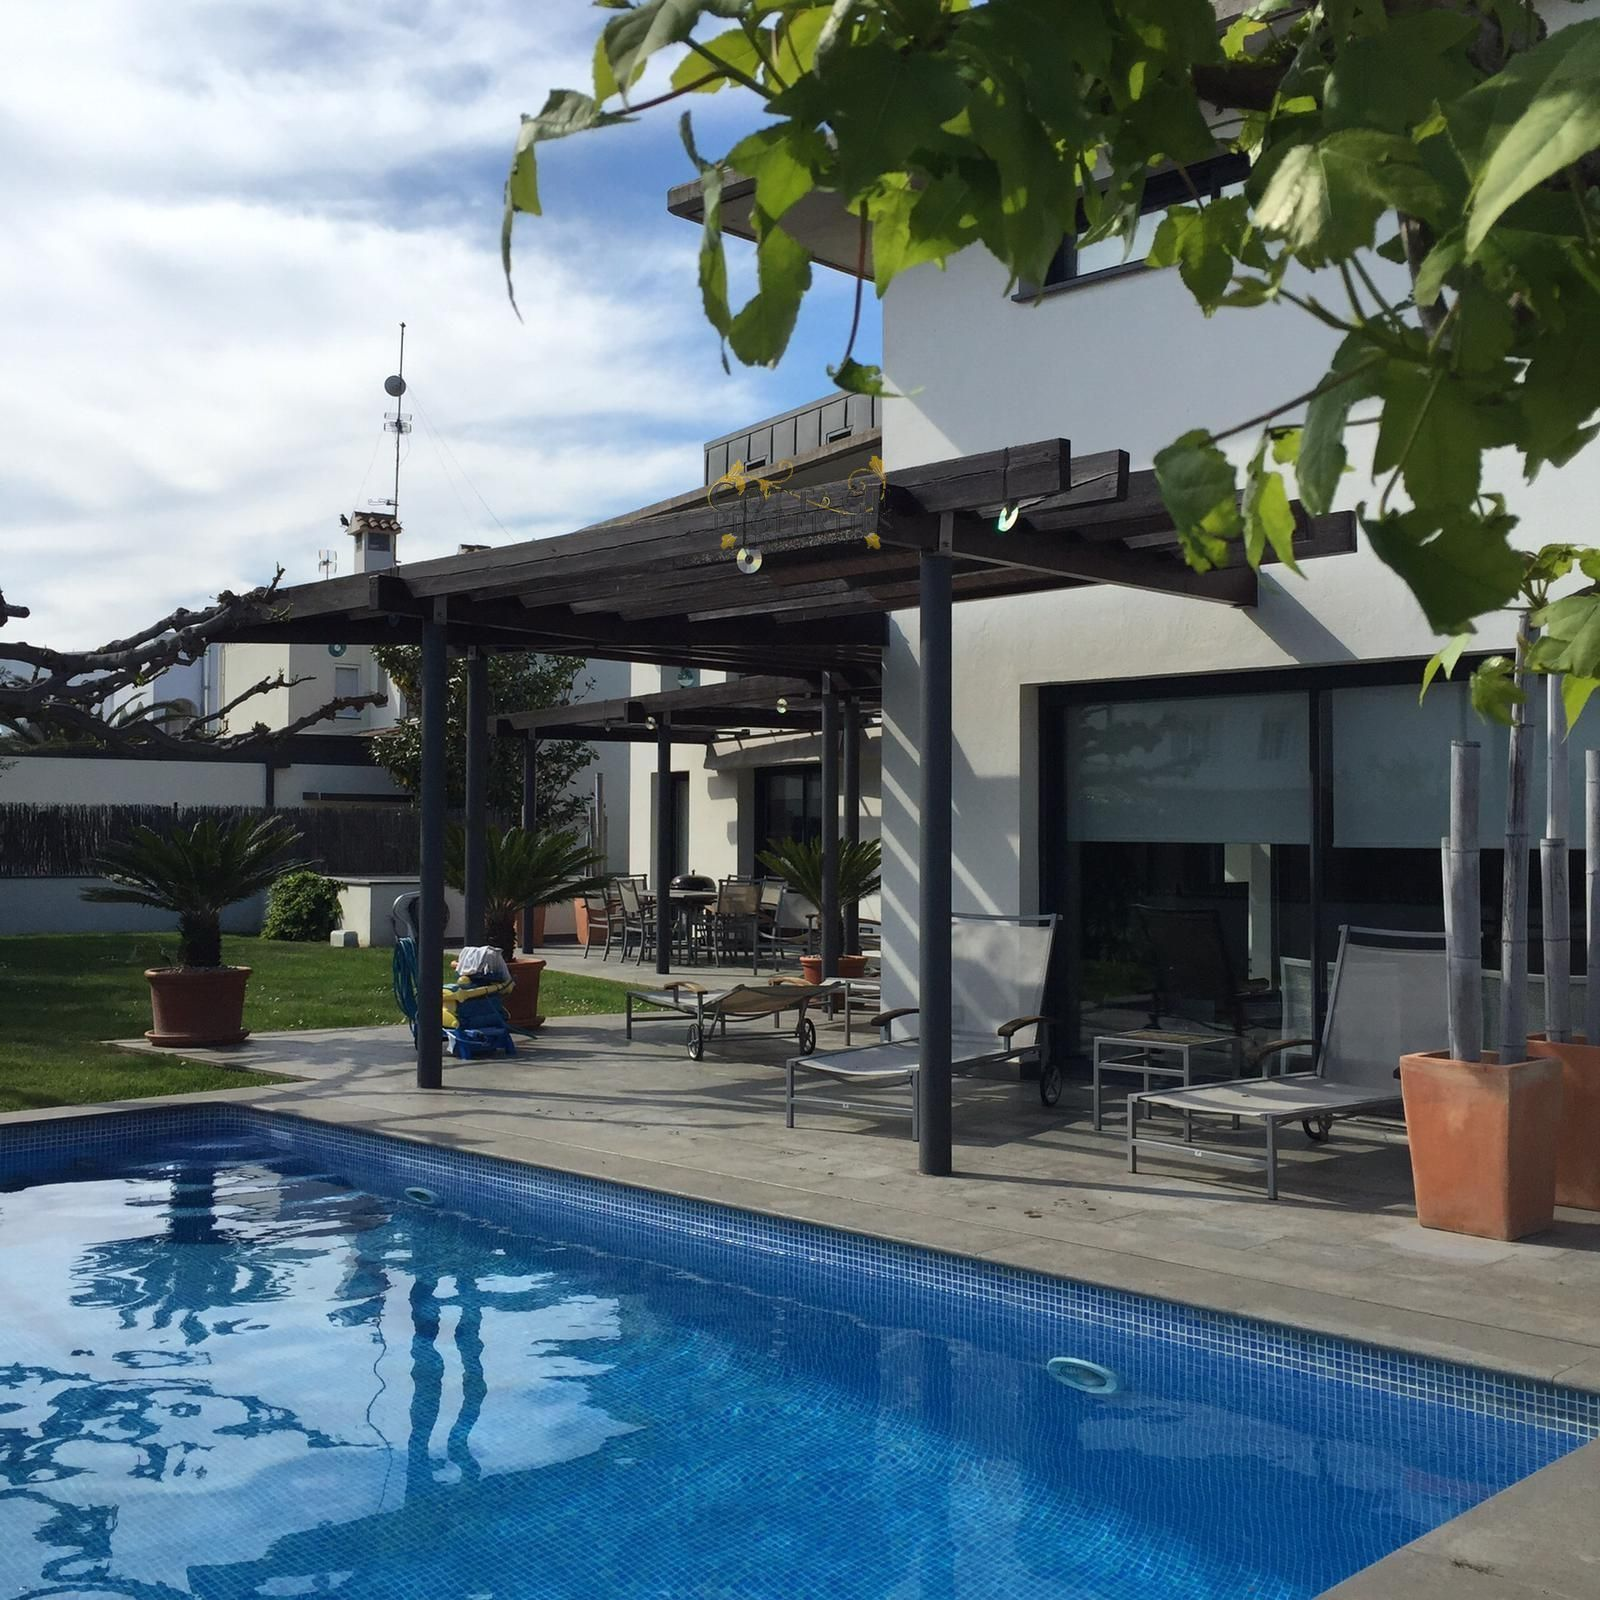 1462: Chalets Independientes in Roses